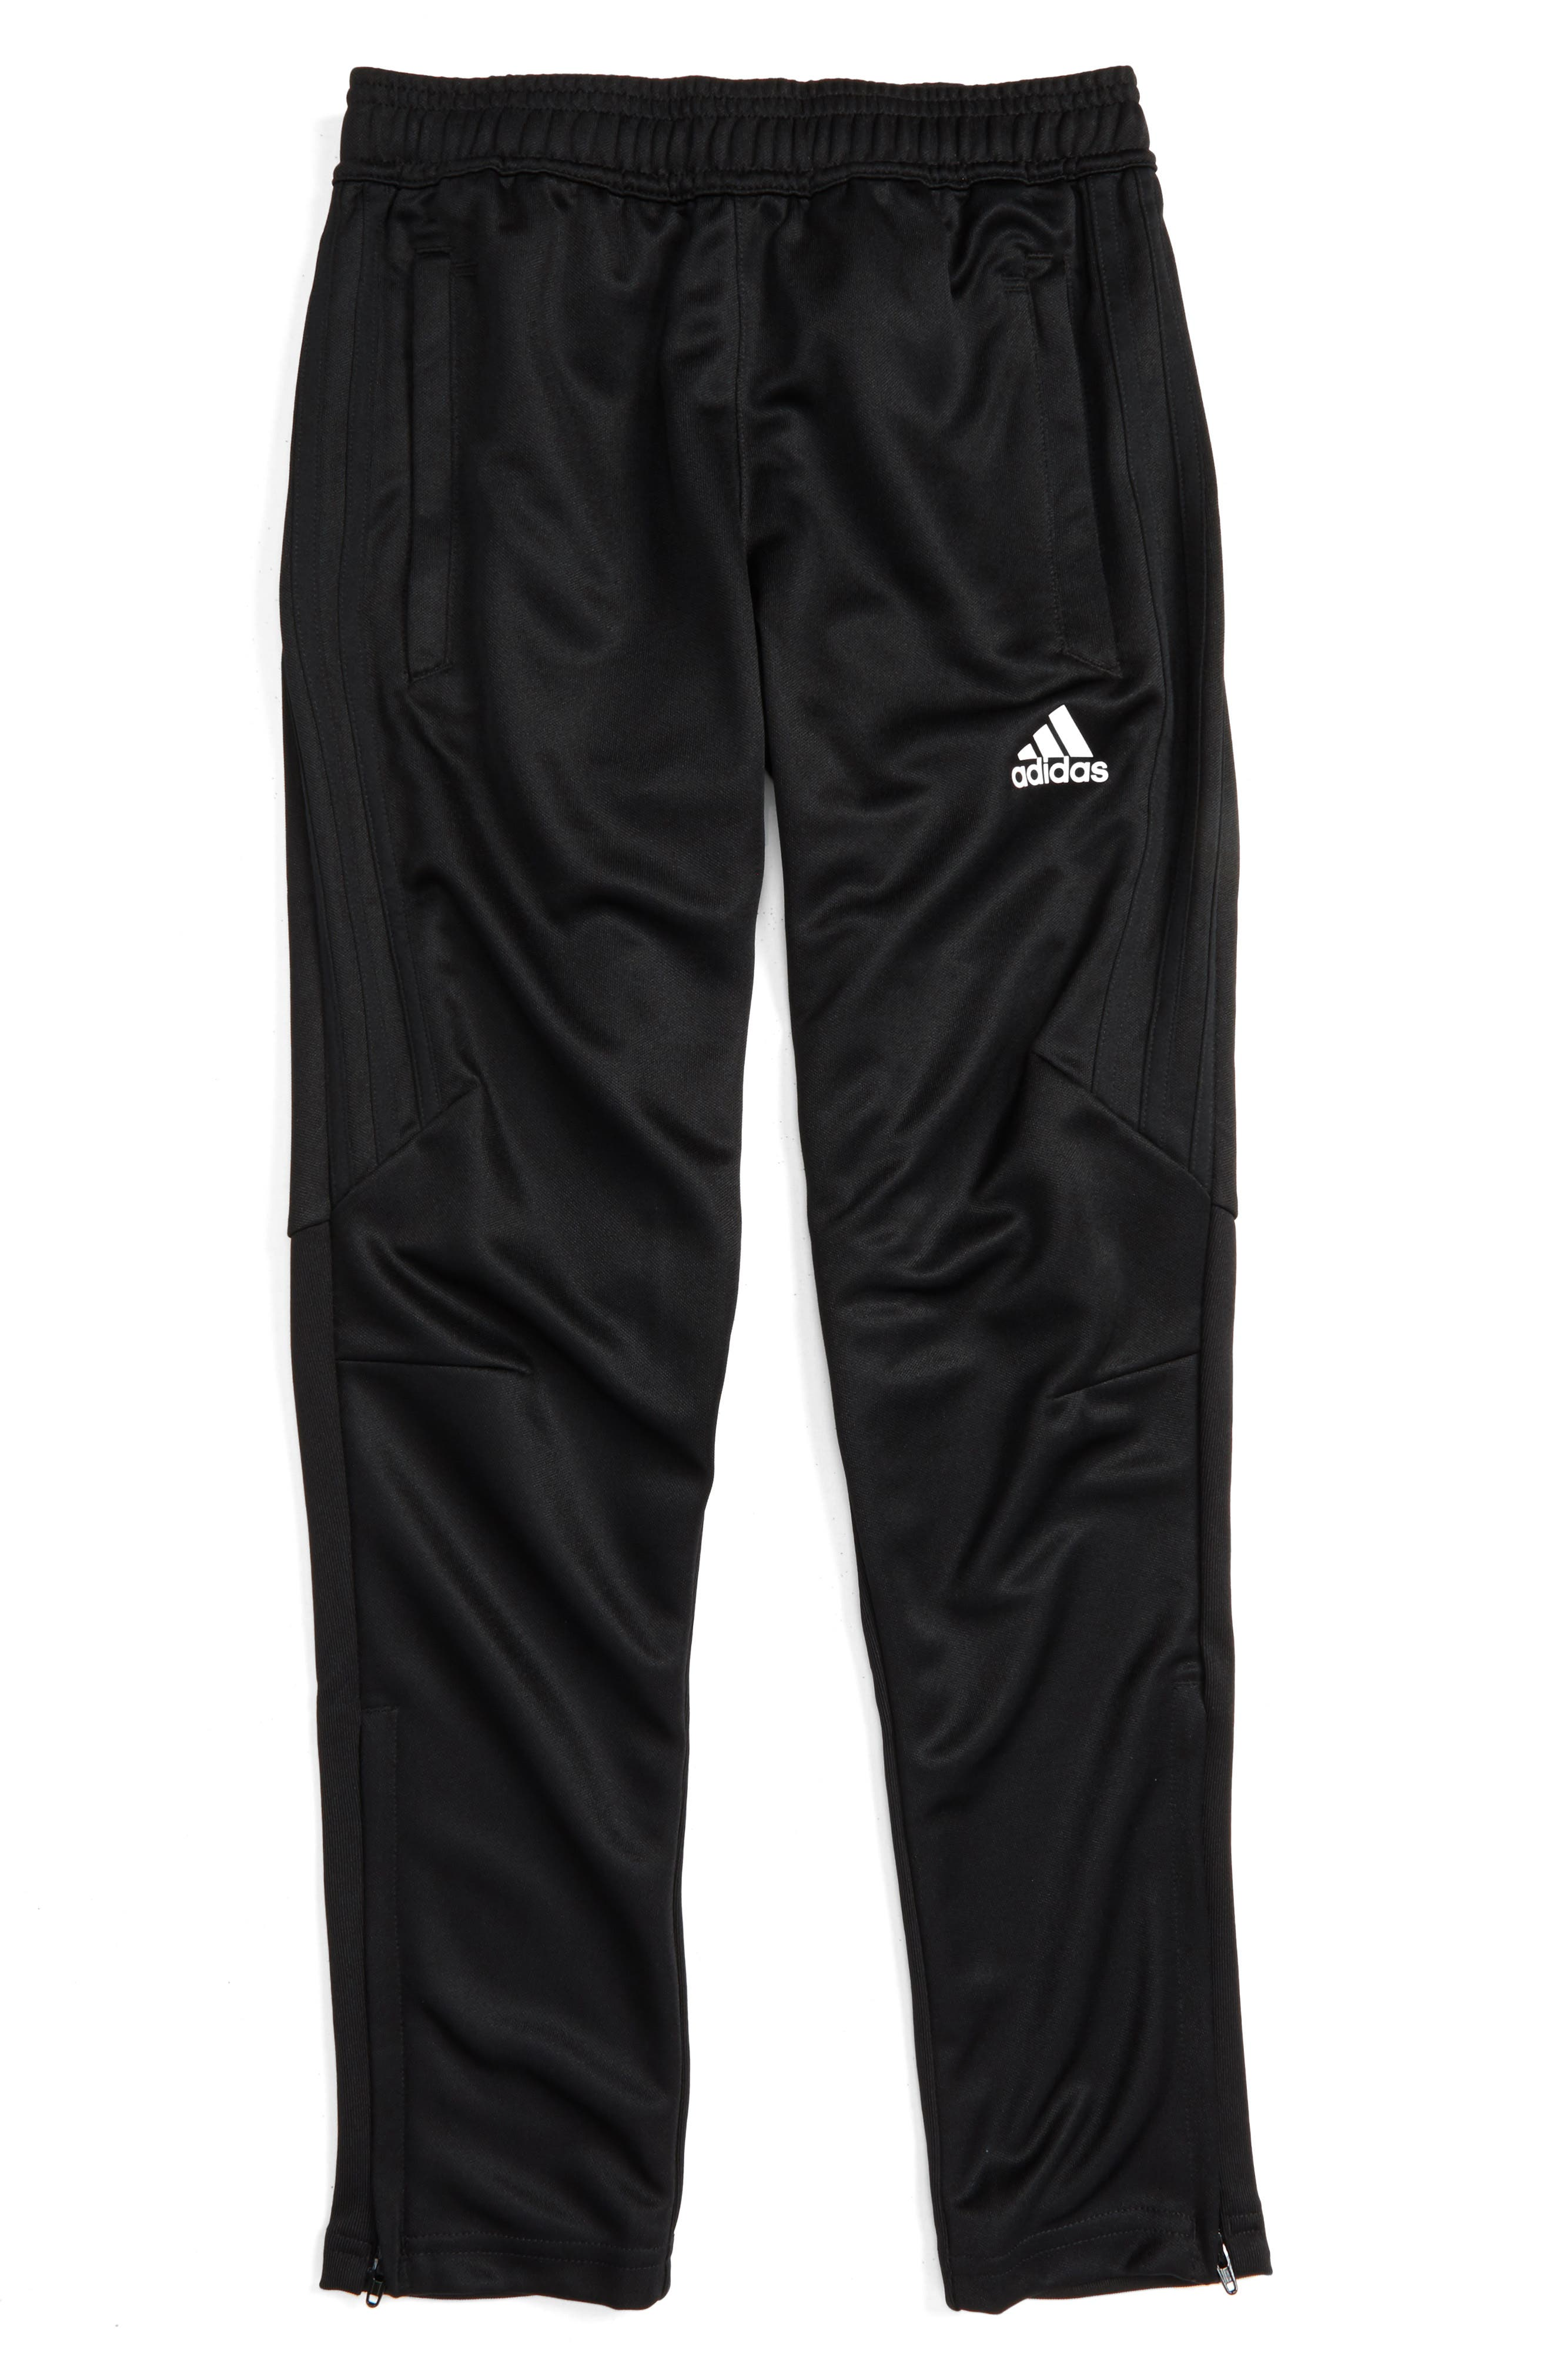 Main Image - adidas Originals Tiro 17 Training Pants (Little Boys & Big Boys)